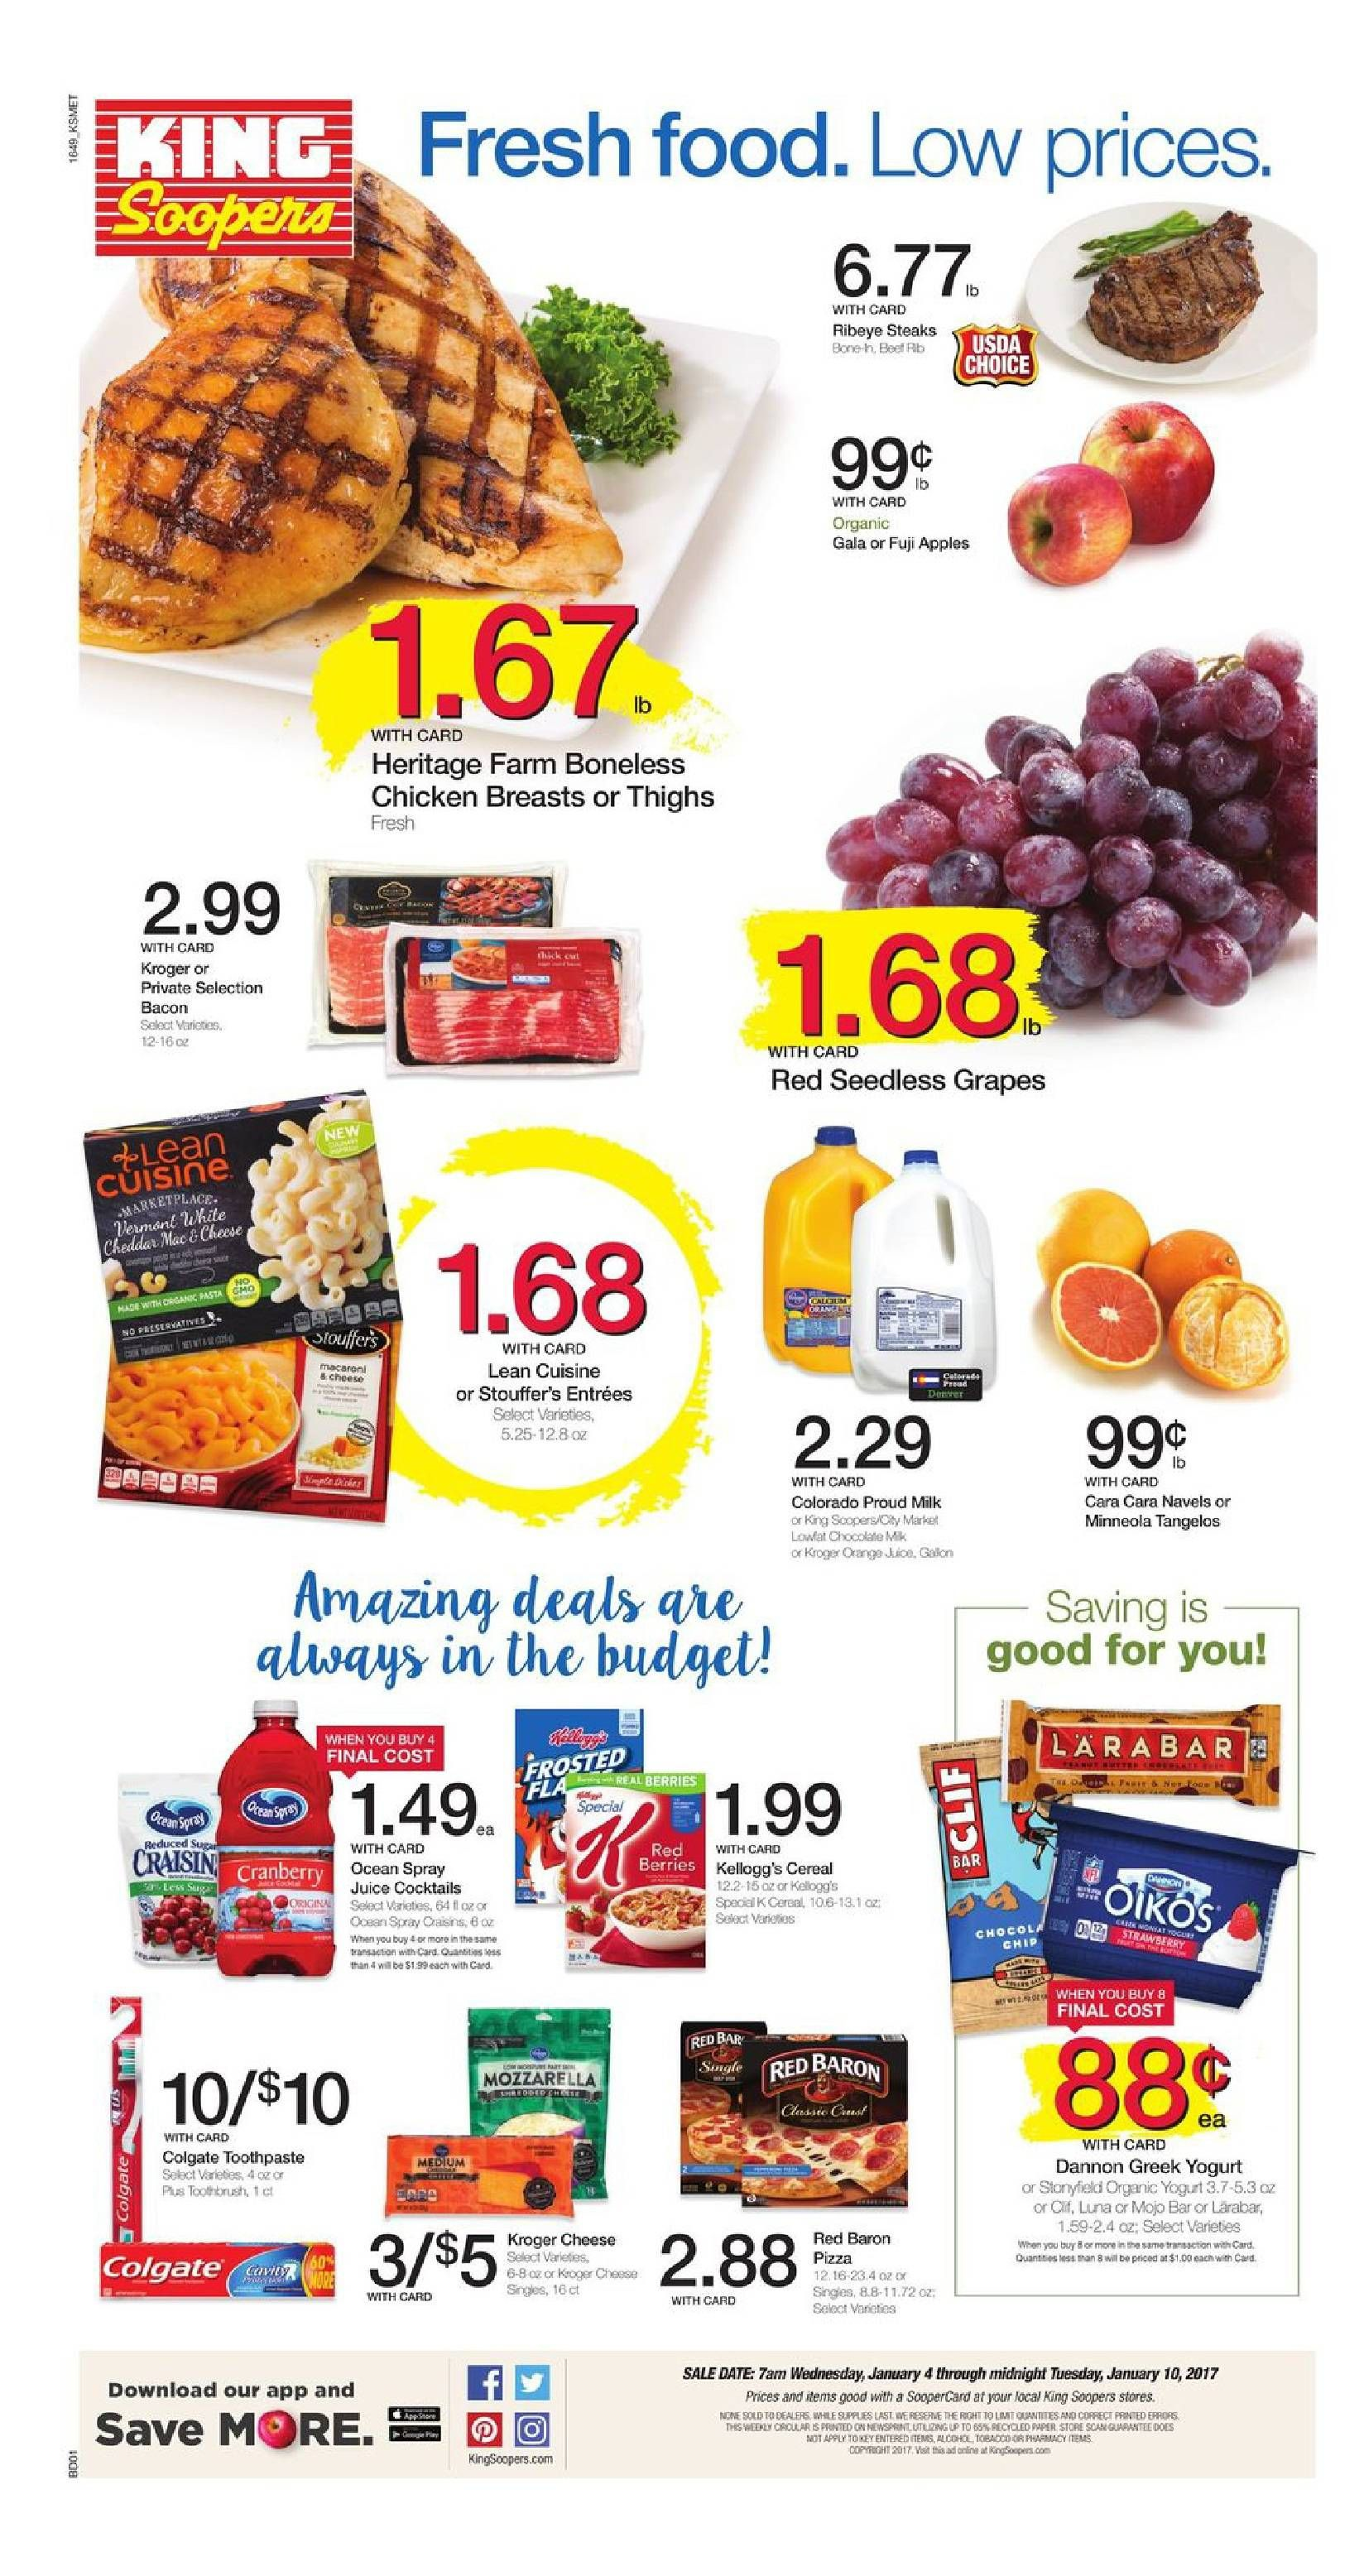 King Soopers weekly ad January 4 - 10, 2017 - http://www.olcatalog ...